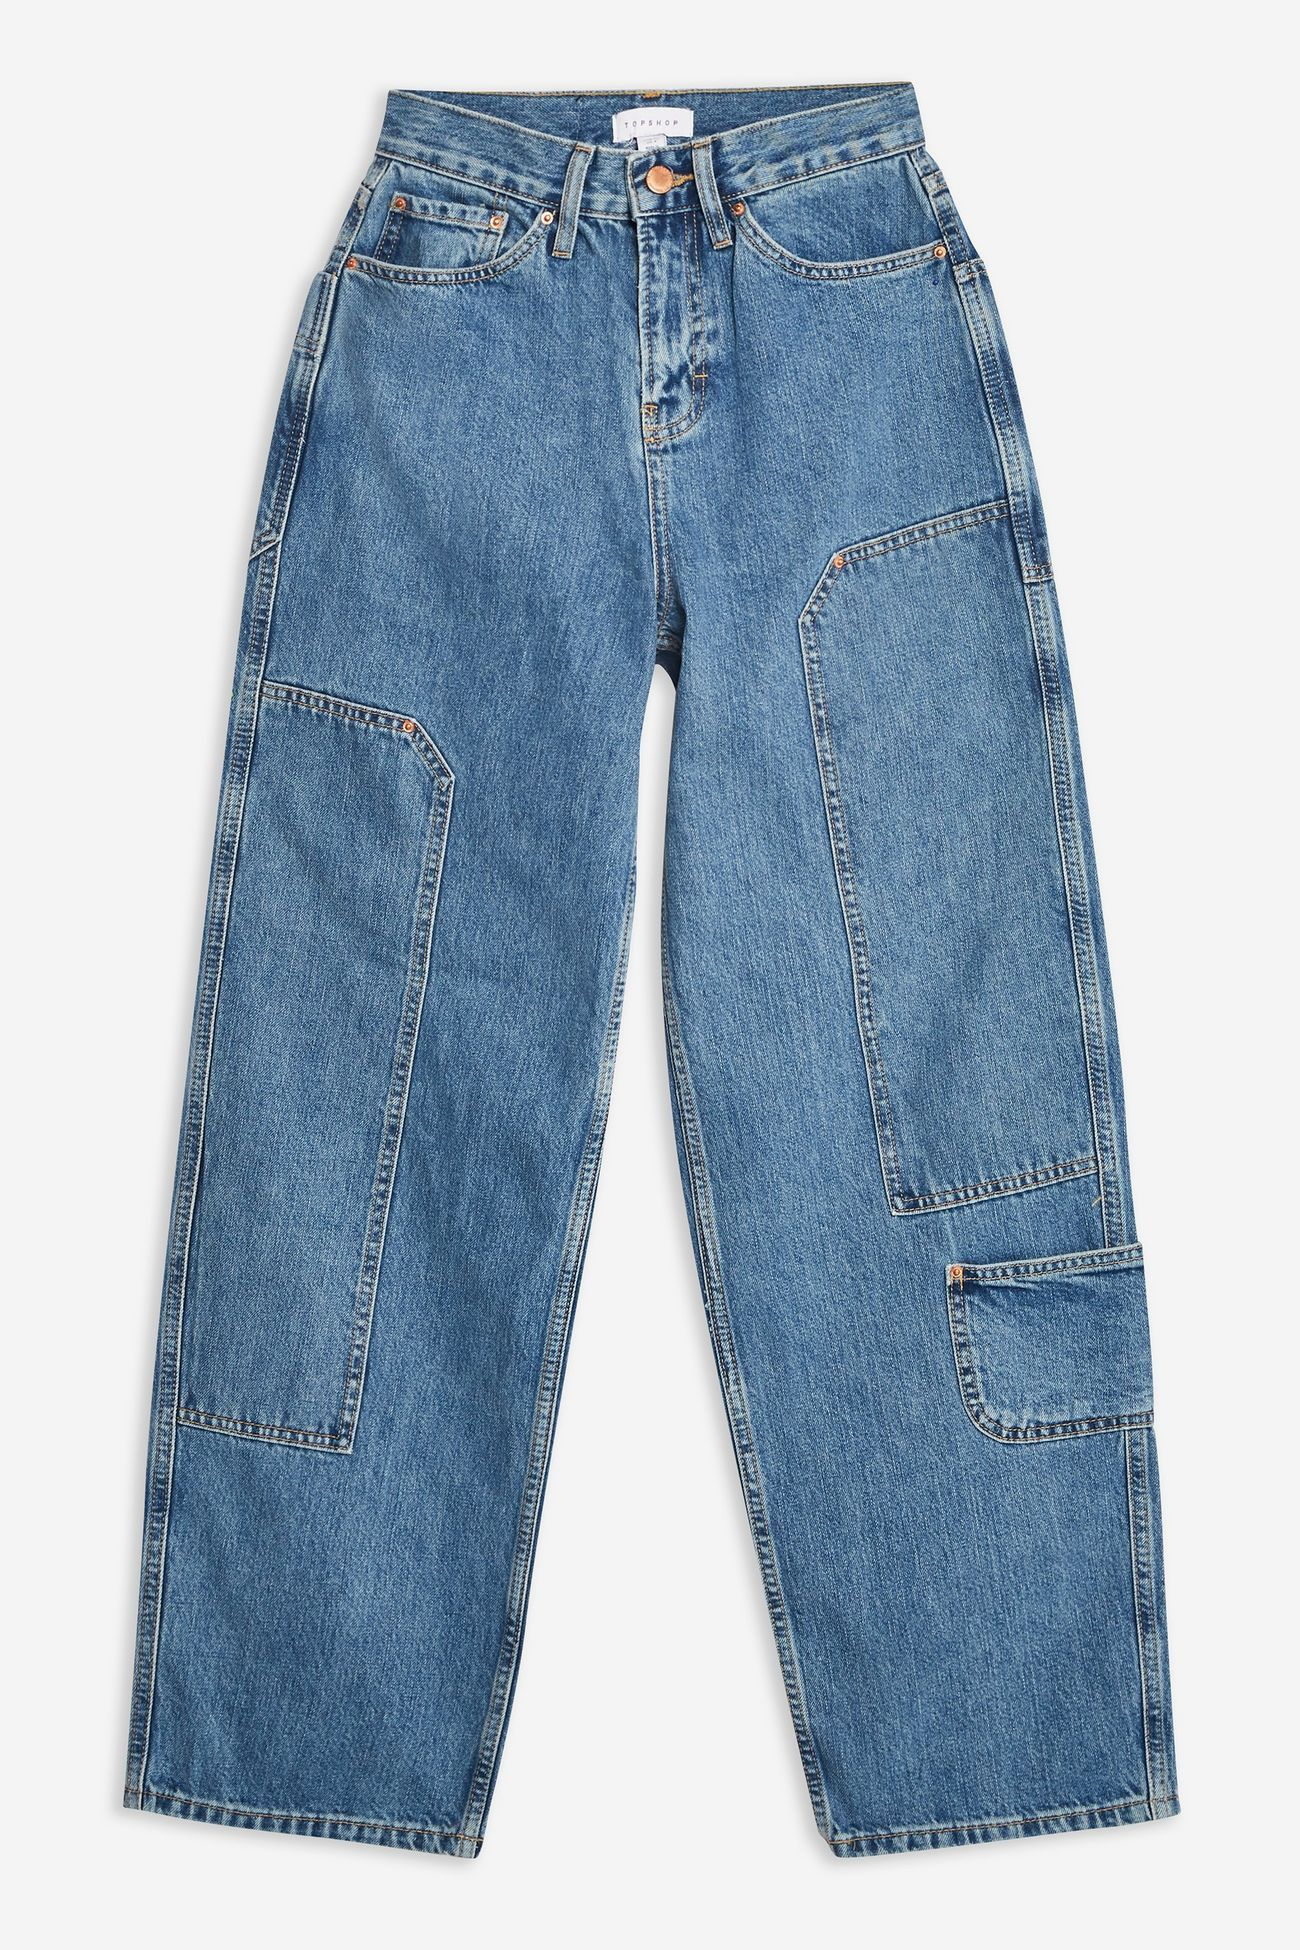 Cargo 90s Baggy Jeans By Boutique Topshop Aesthetic Clothes Comfy Jeans Outfit Baggy Clothes